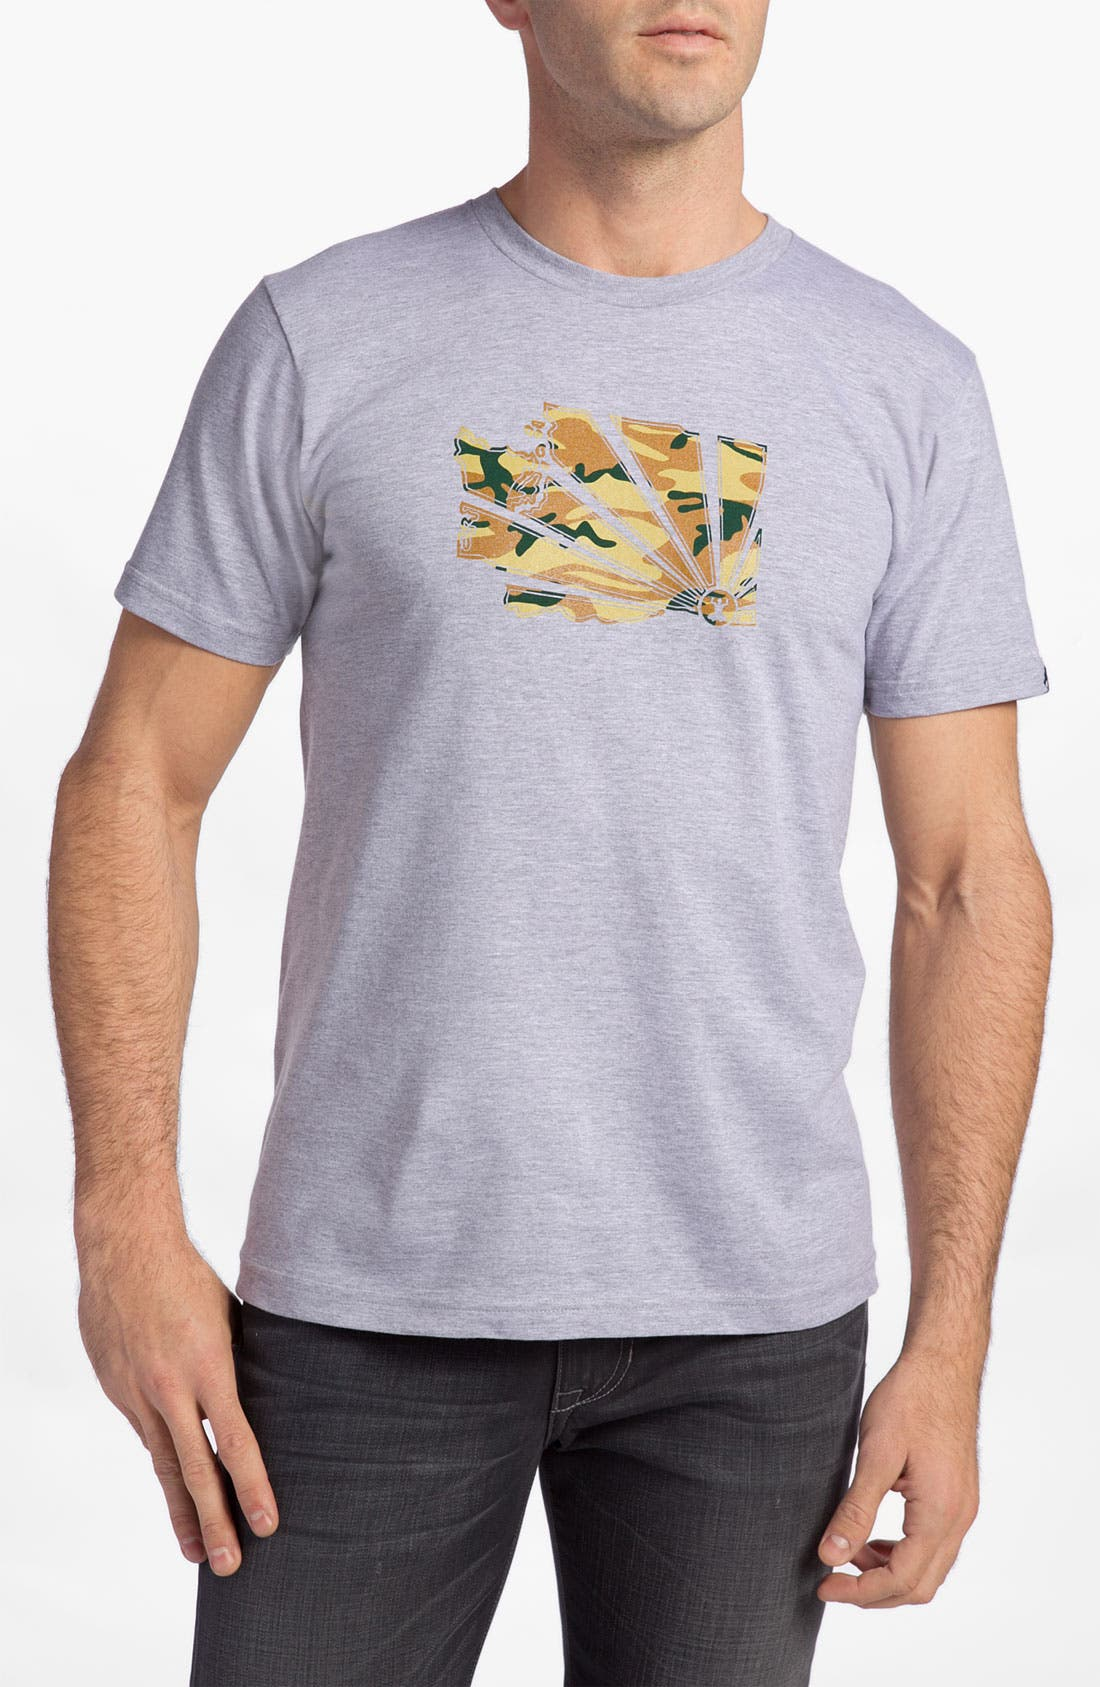 Main Image - Casual Industrees Graphic T-Shirt